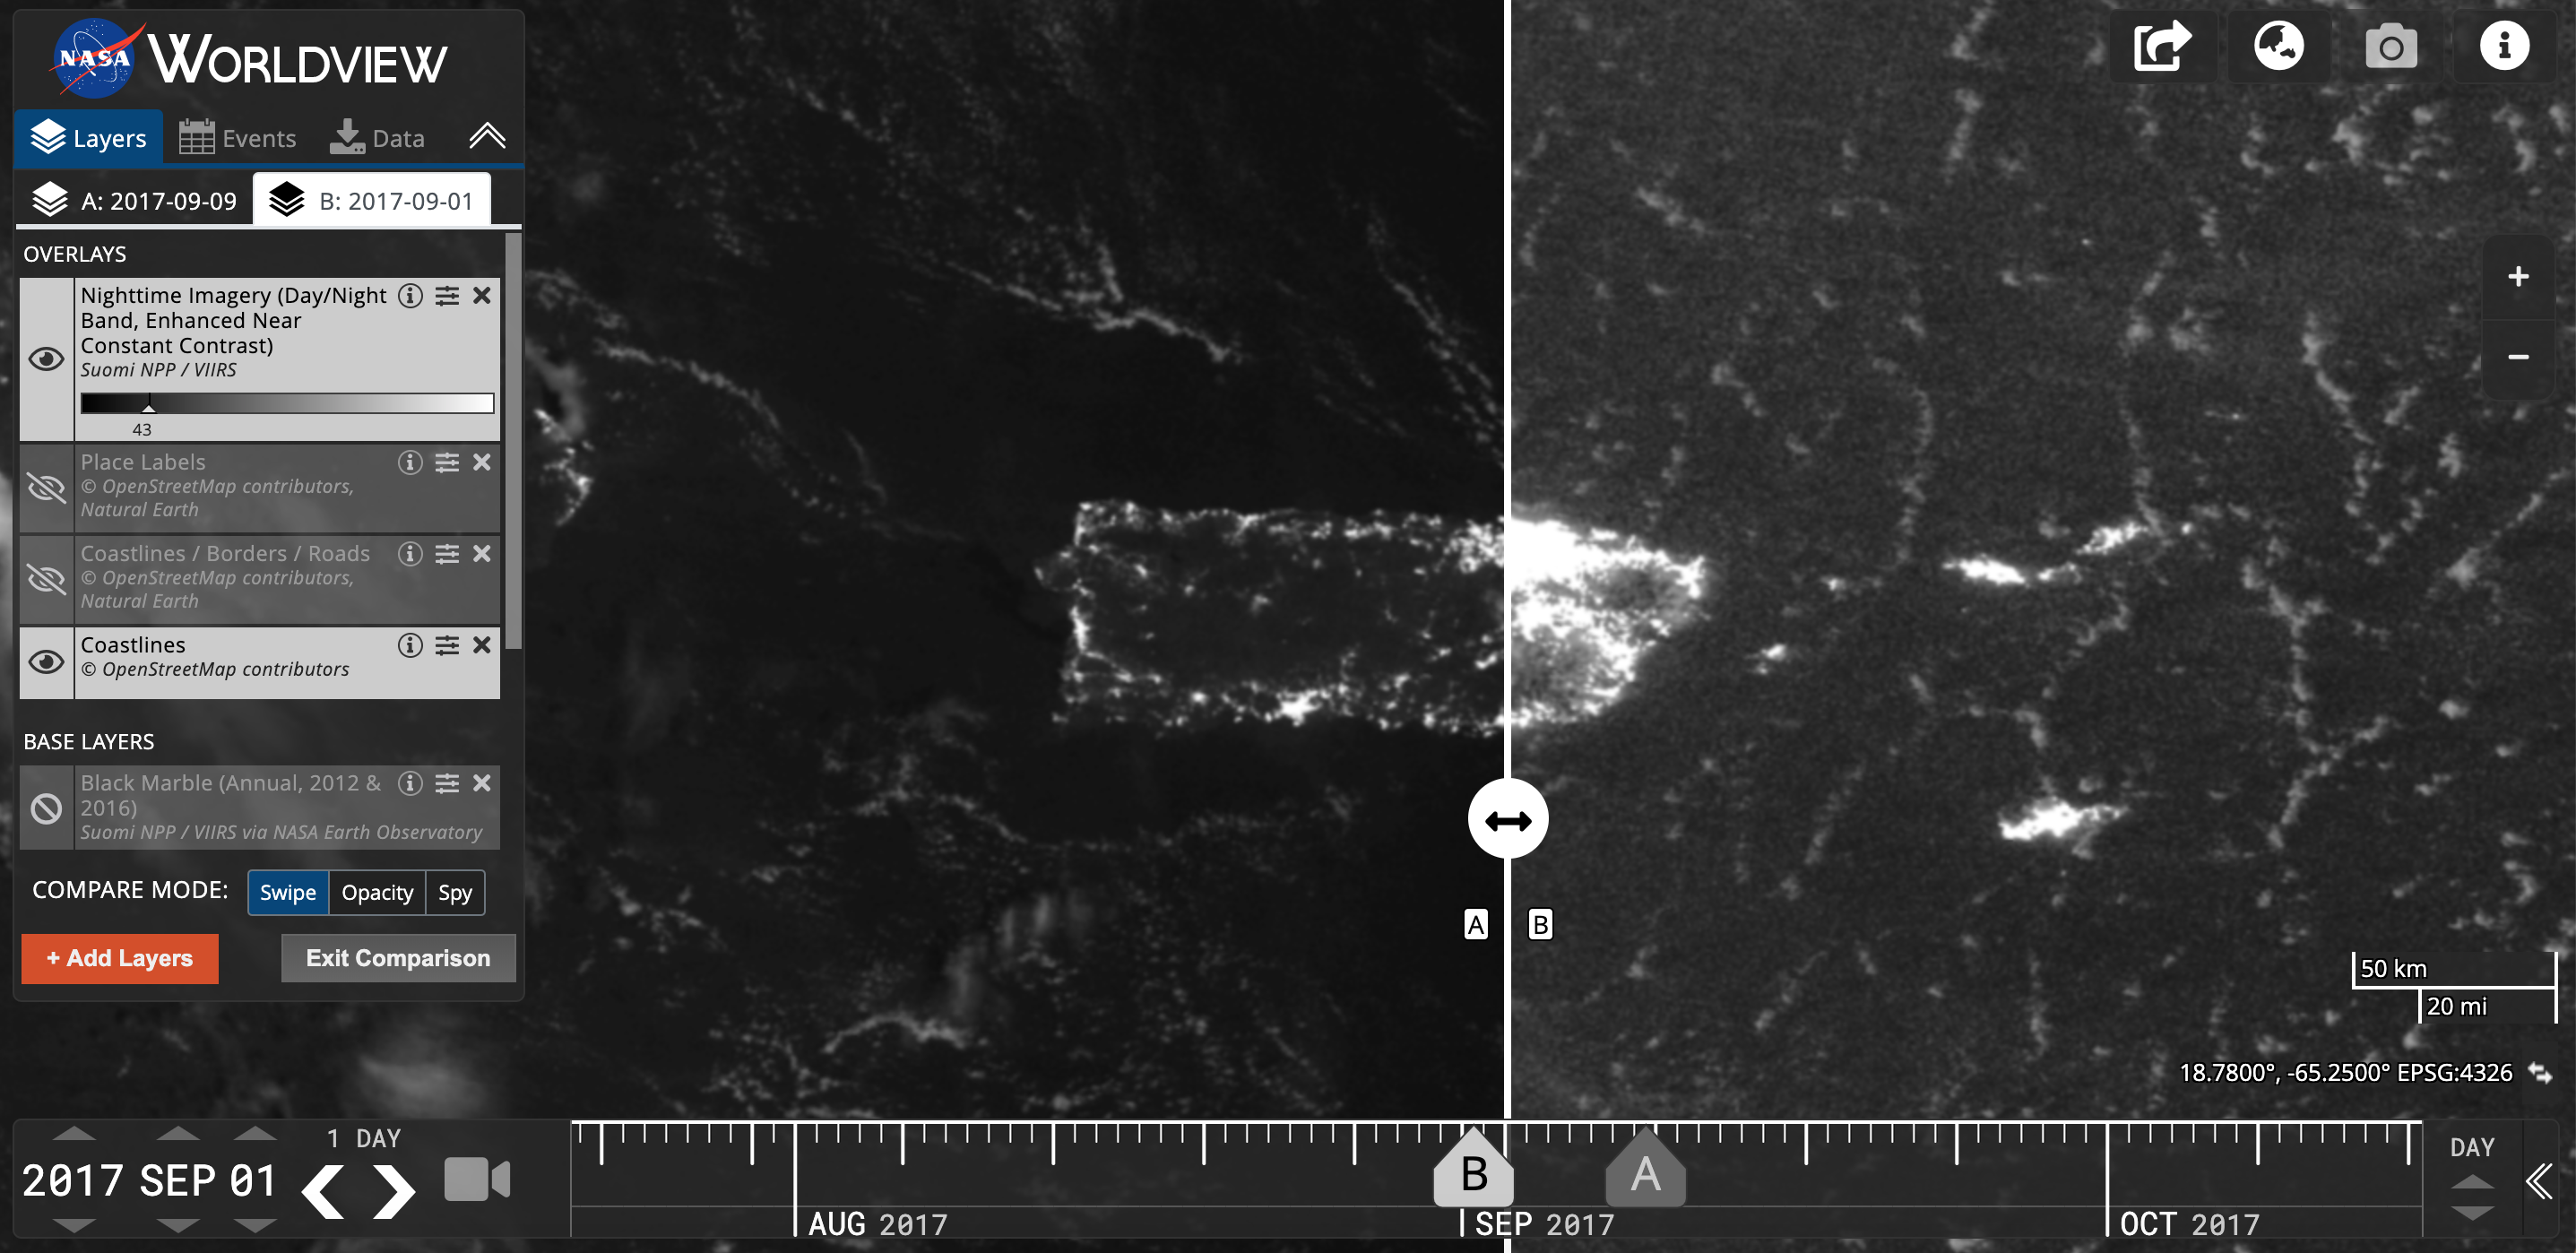 Worldview data visualization of the nighttime lights in Puerto Rico pre- and post- Hurricane Maria, which made landfall on September 20, 2017. The post-hurricane image on the left shows widespread outages around San Juan, including key hospital and transportation infrastructure.​